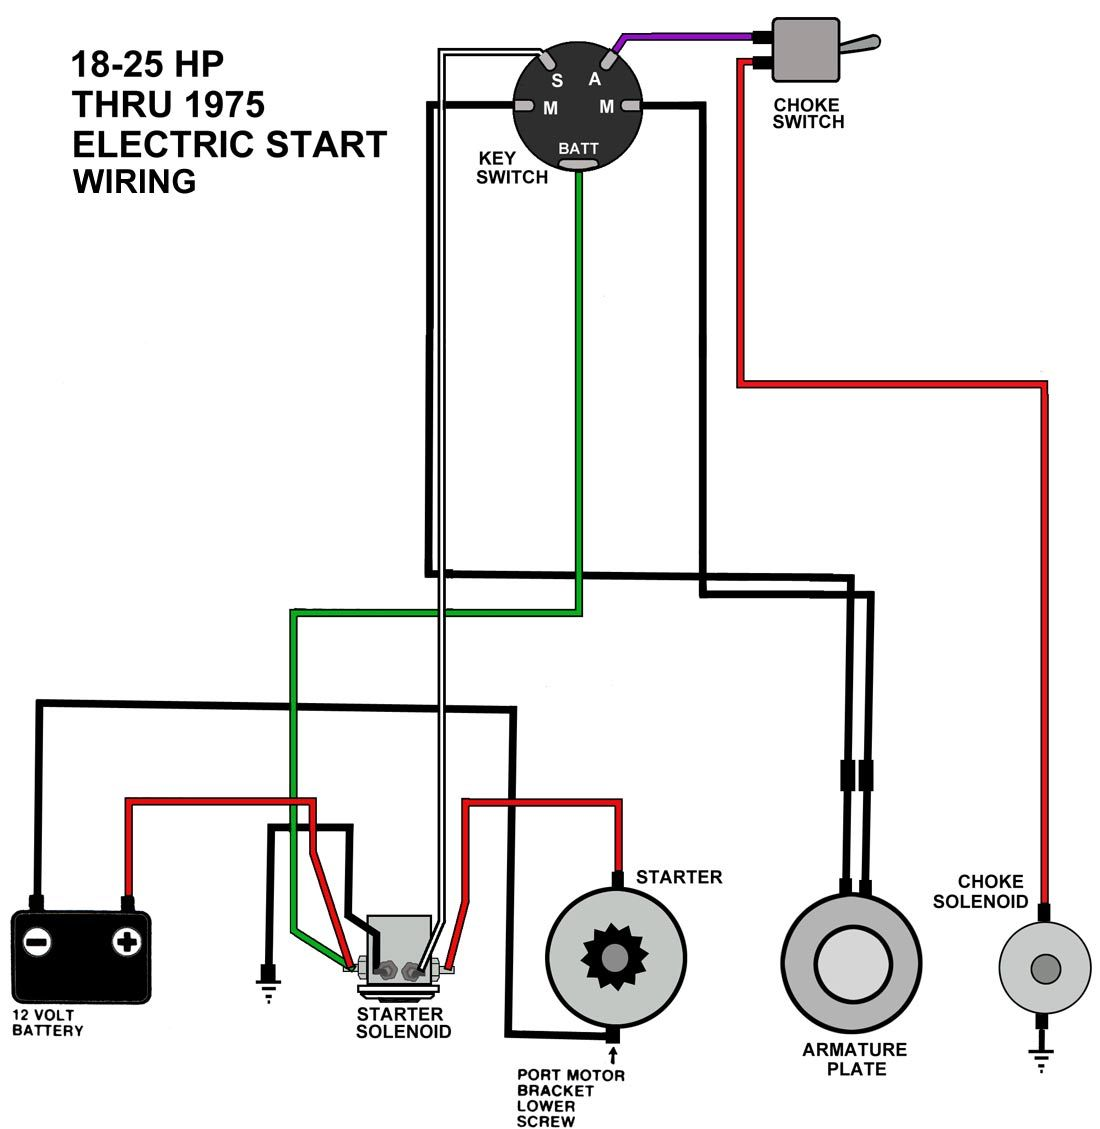 Key Switch Wiring Diagram Diagrams Schematics And Starter